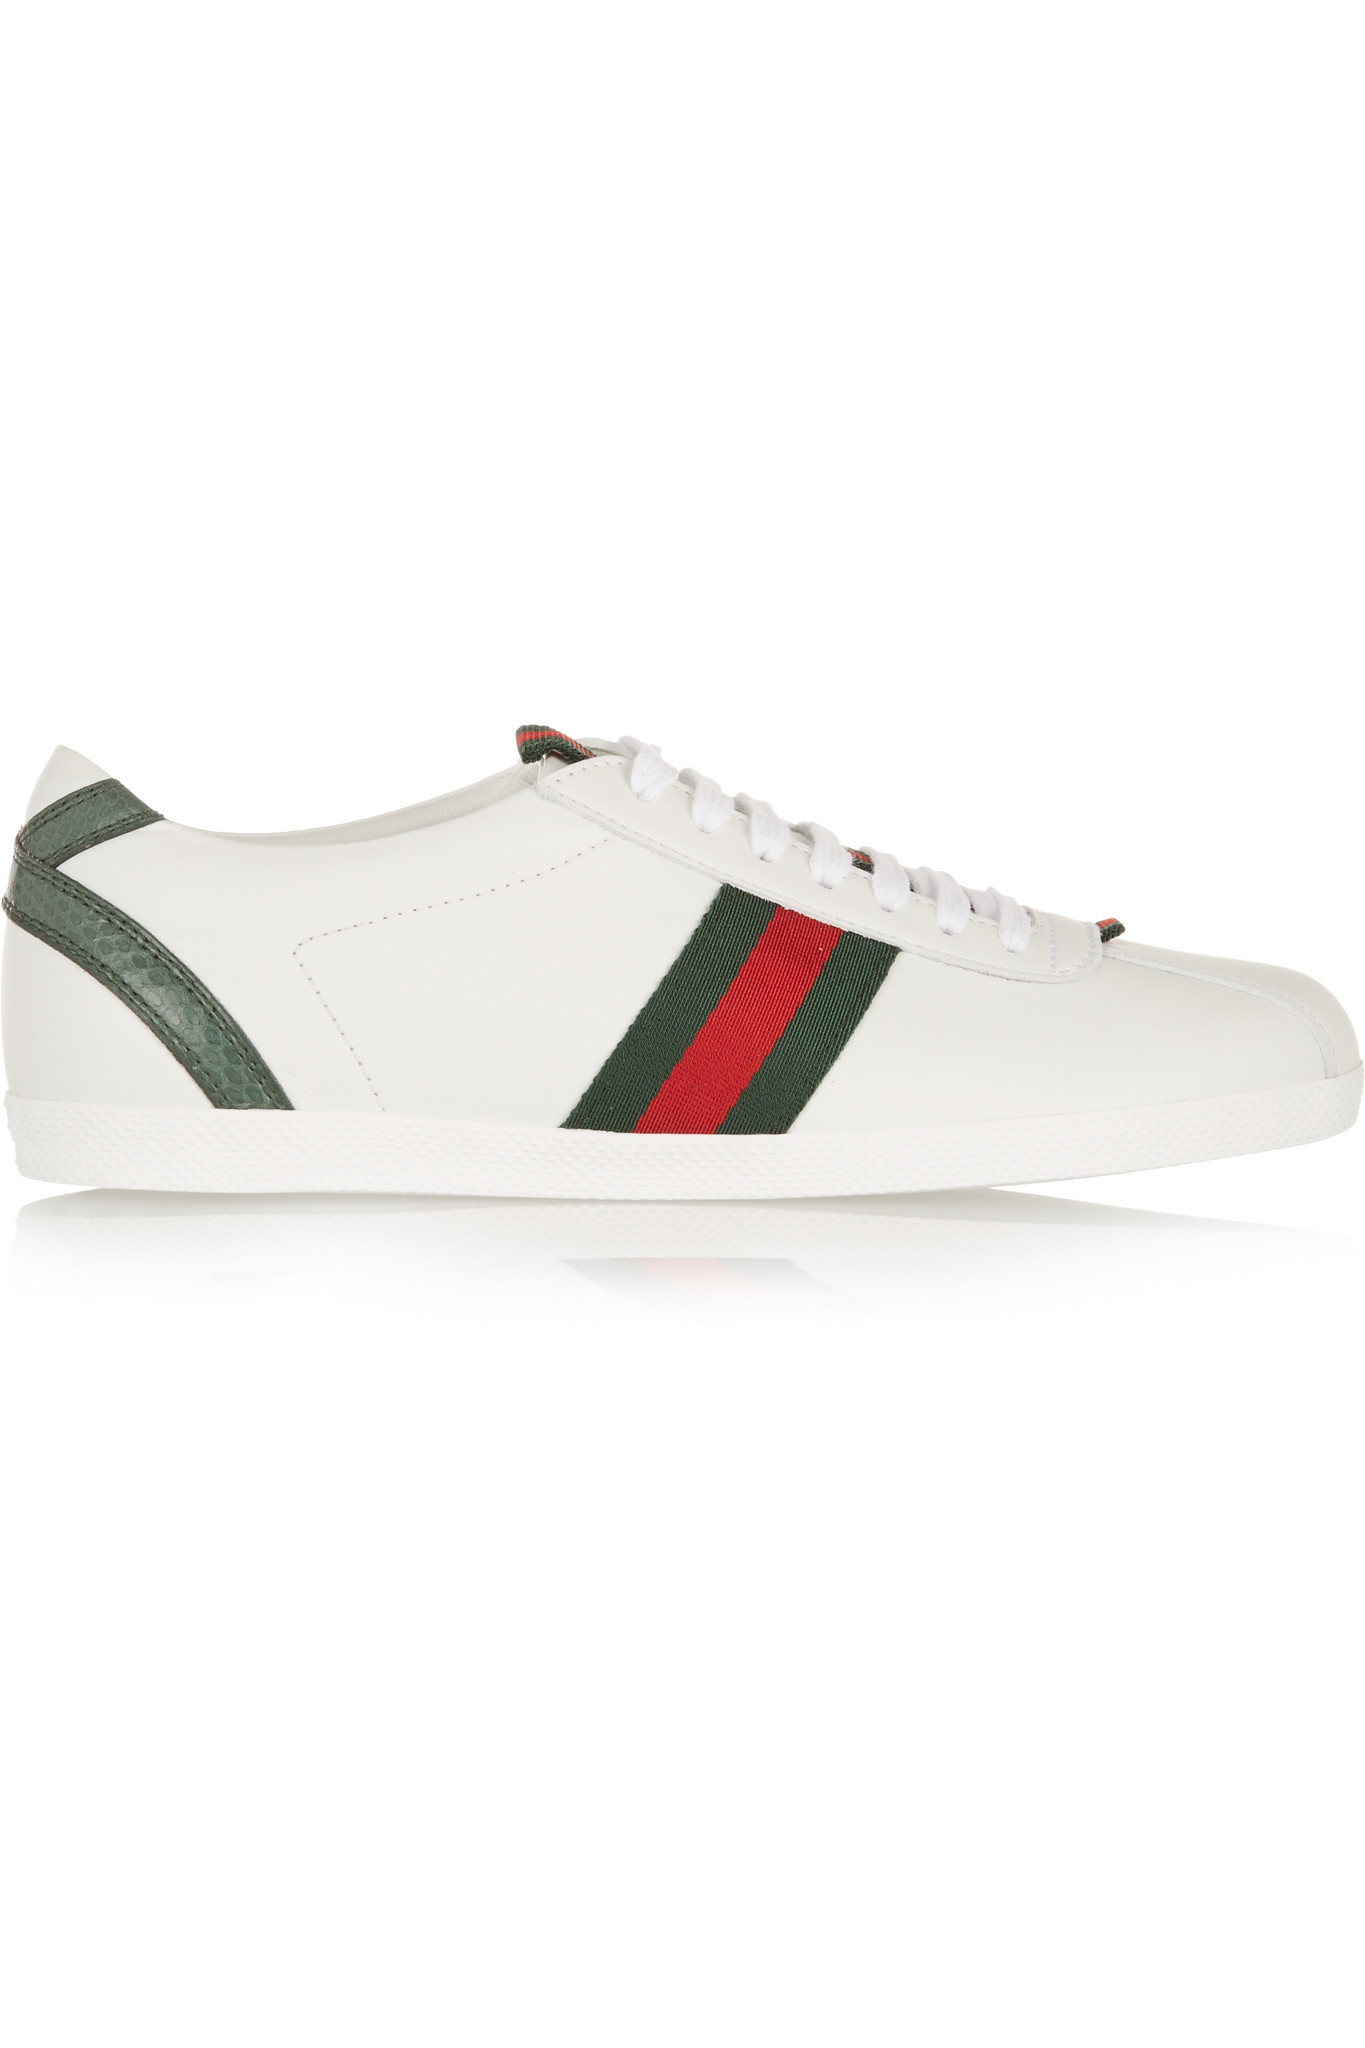 d76e3fb5f0d Lyst - Gucci New Ace Watersnake-trimmed Leather Sneakers in White